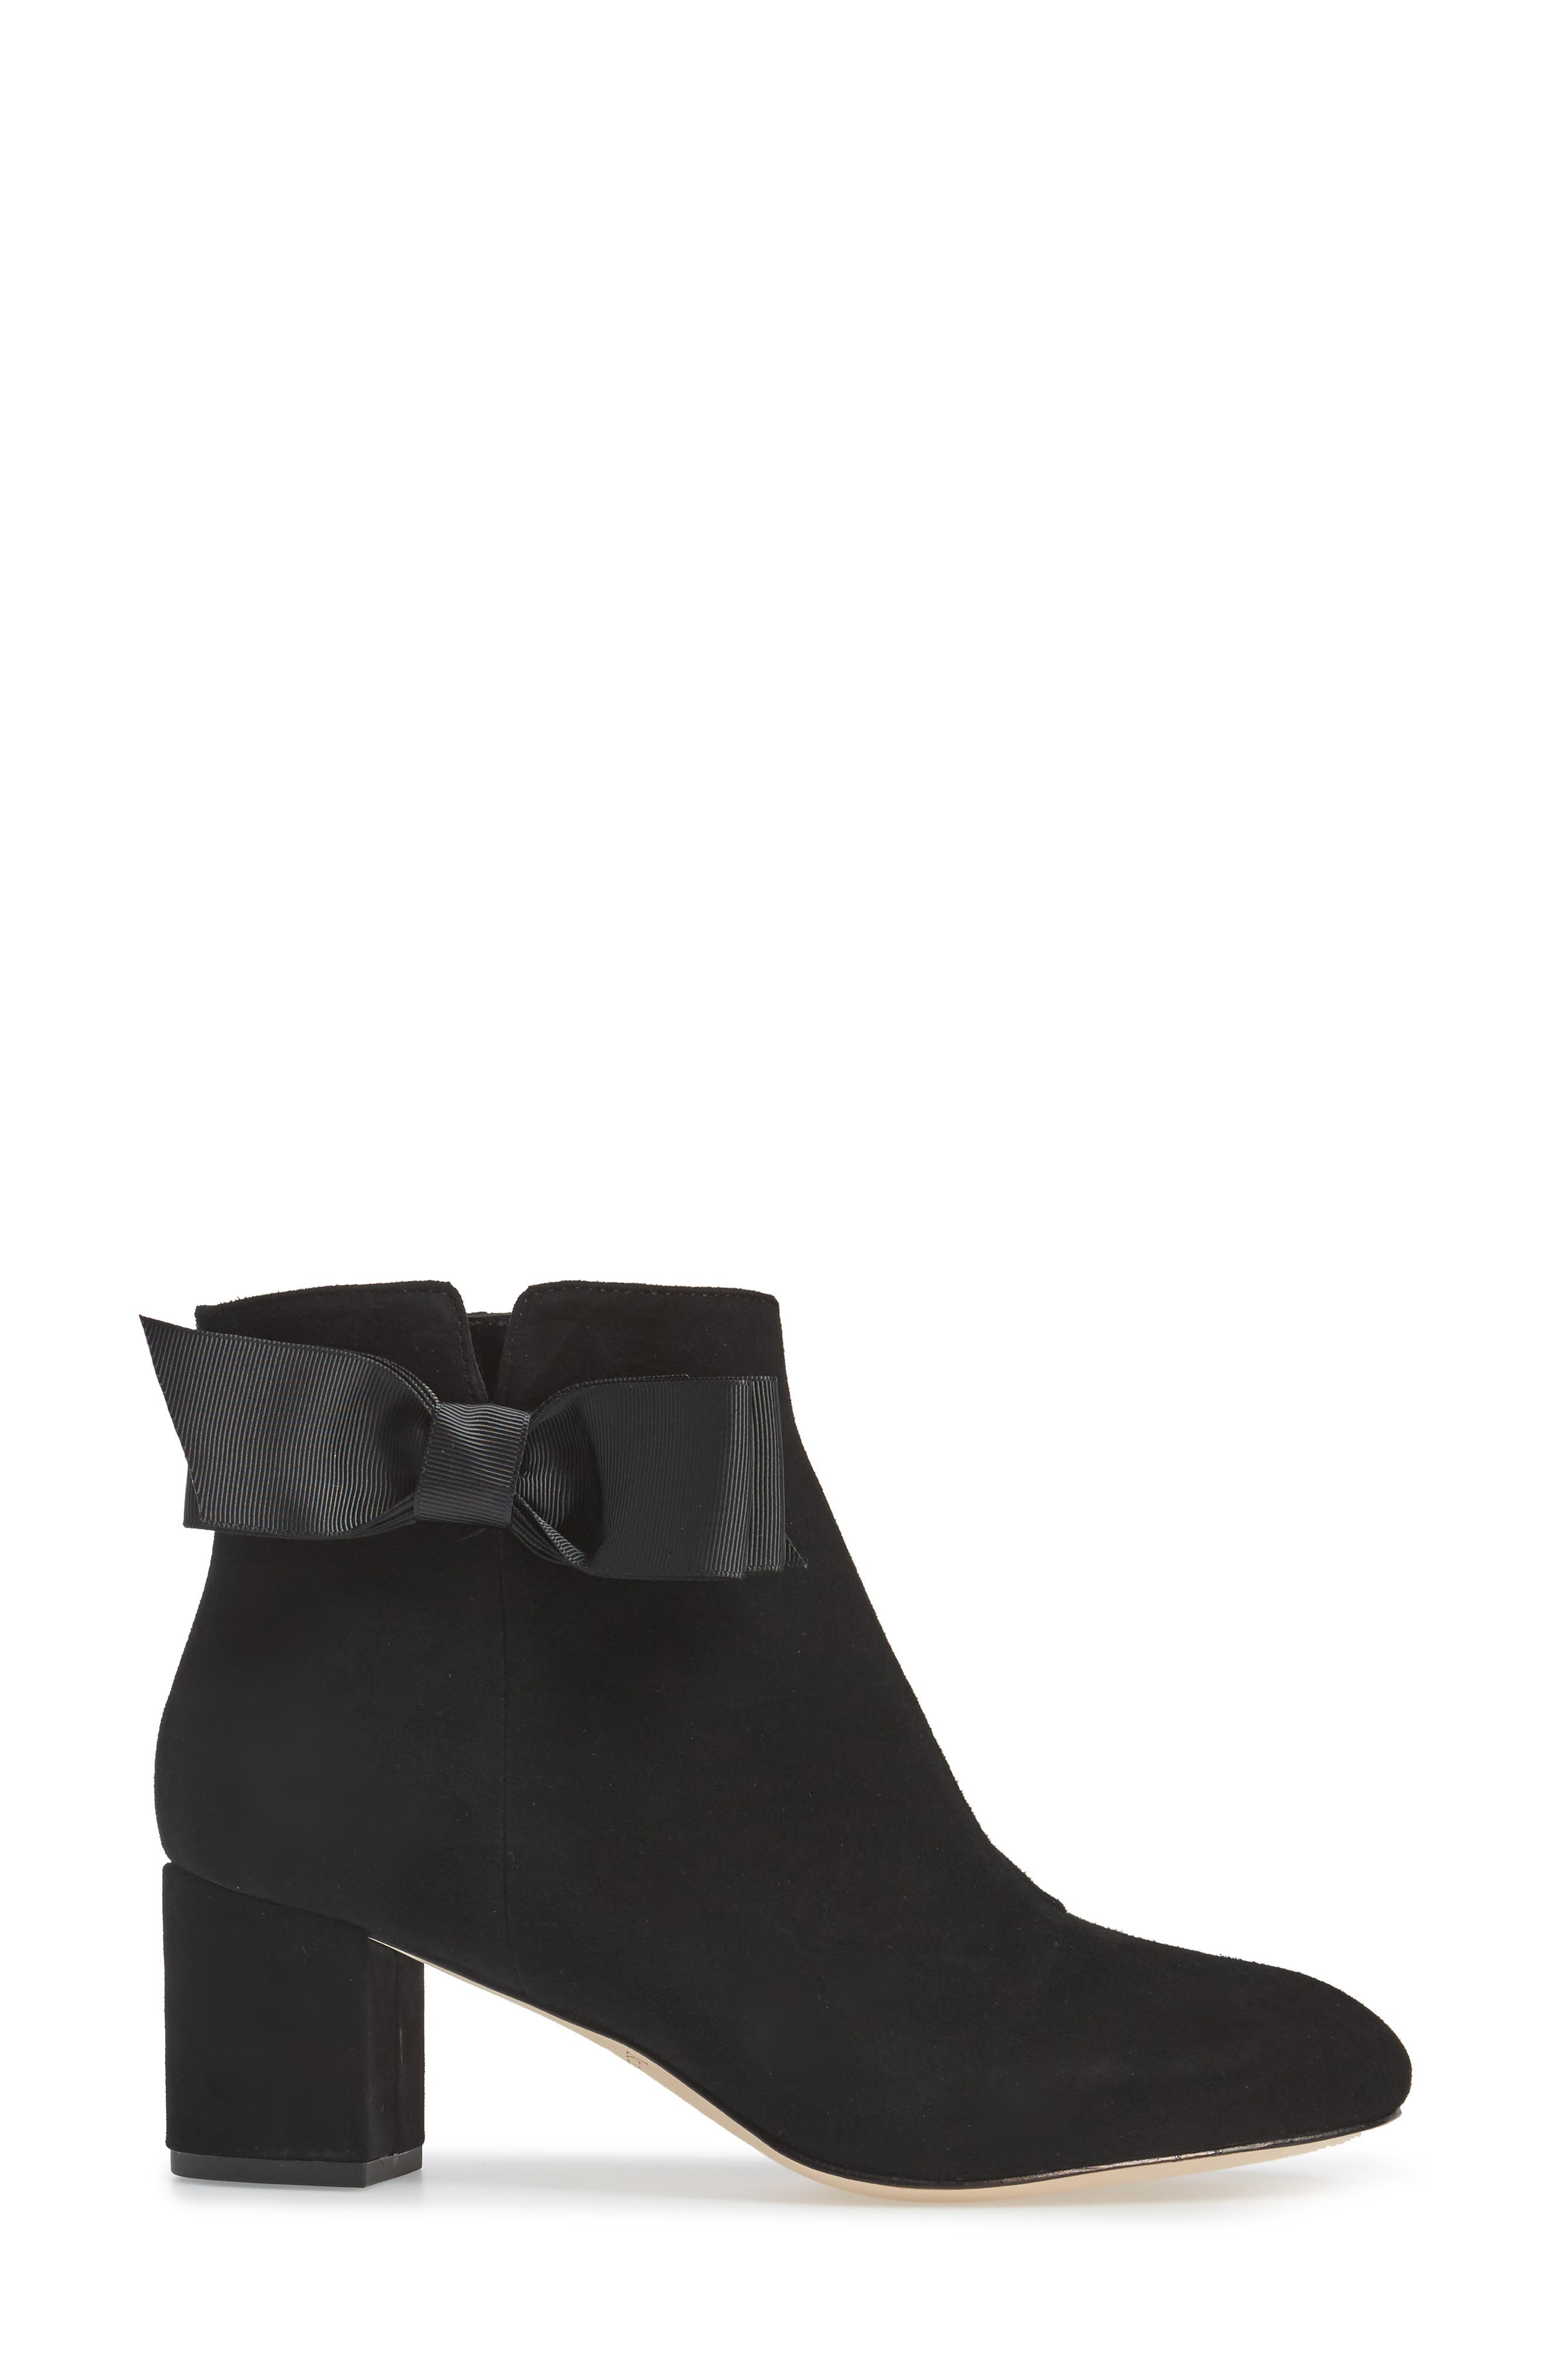 Alternate Image 3  - kate spade new york langley bow bootie (Women)